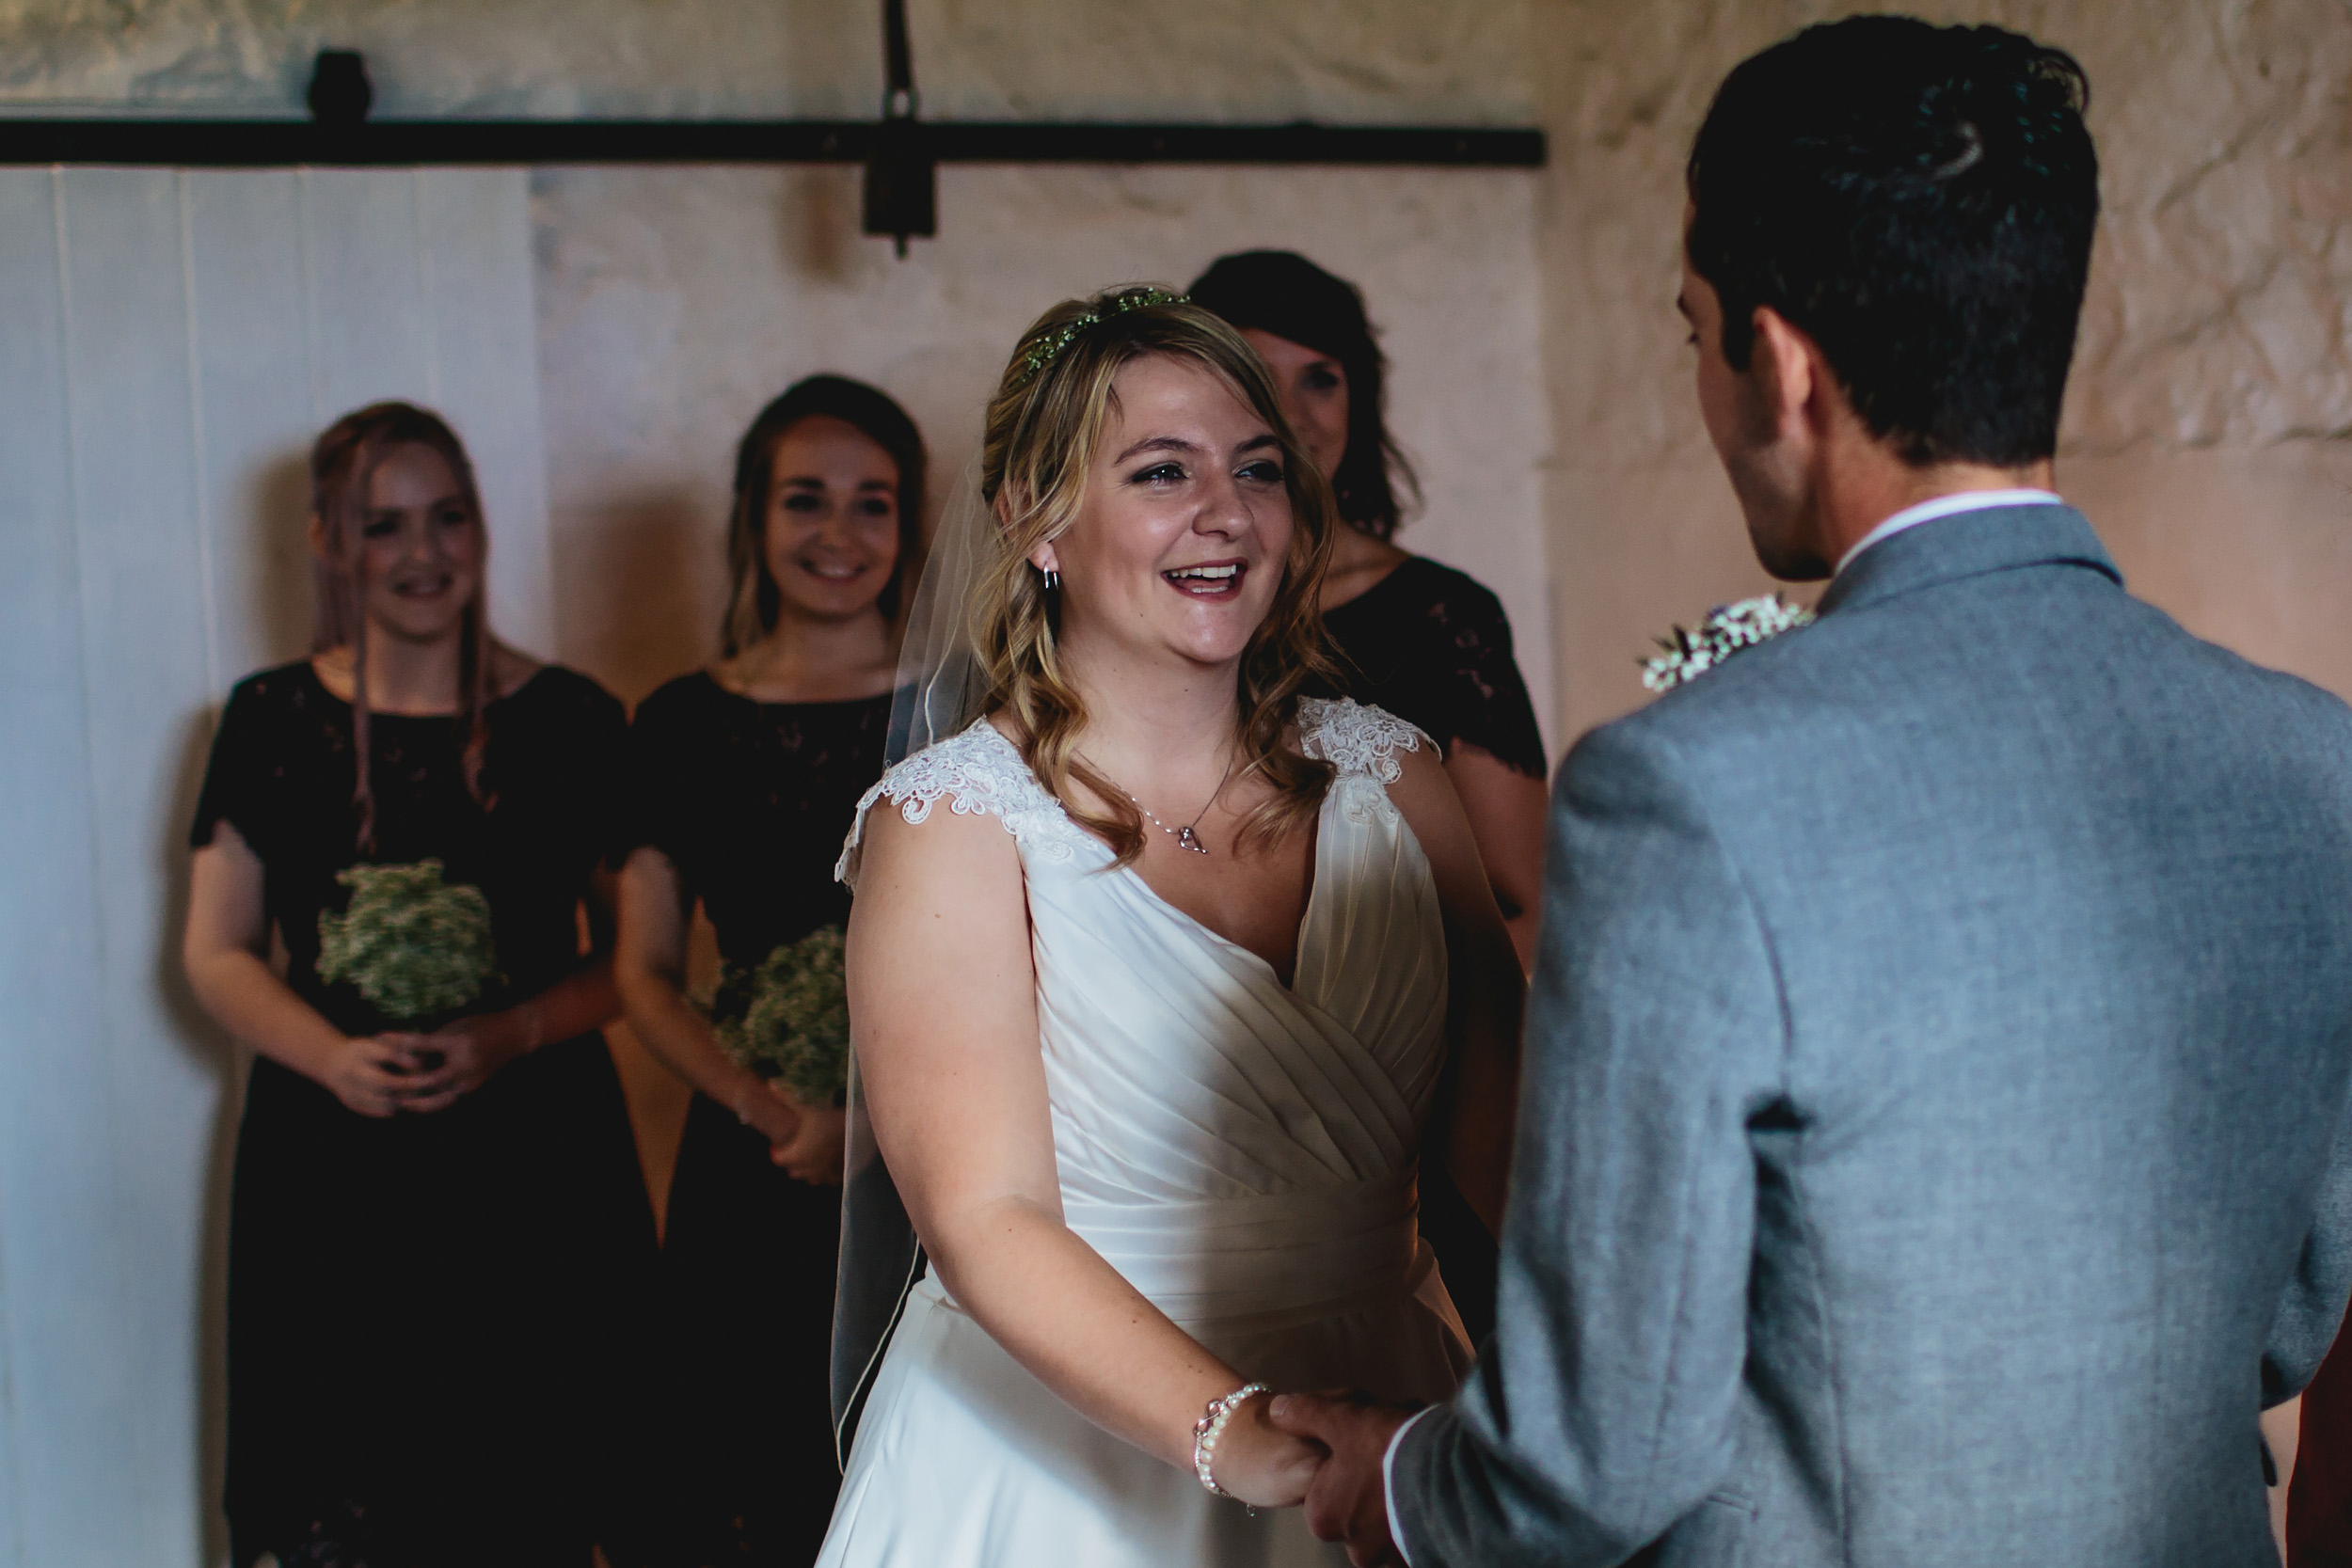 Bride smiling during the wedding ceremony at Cow Shed Crail